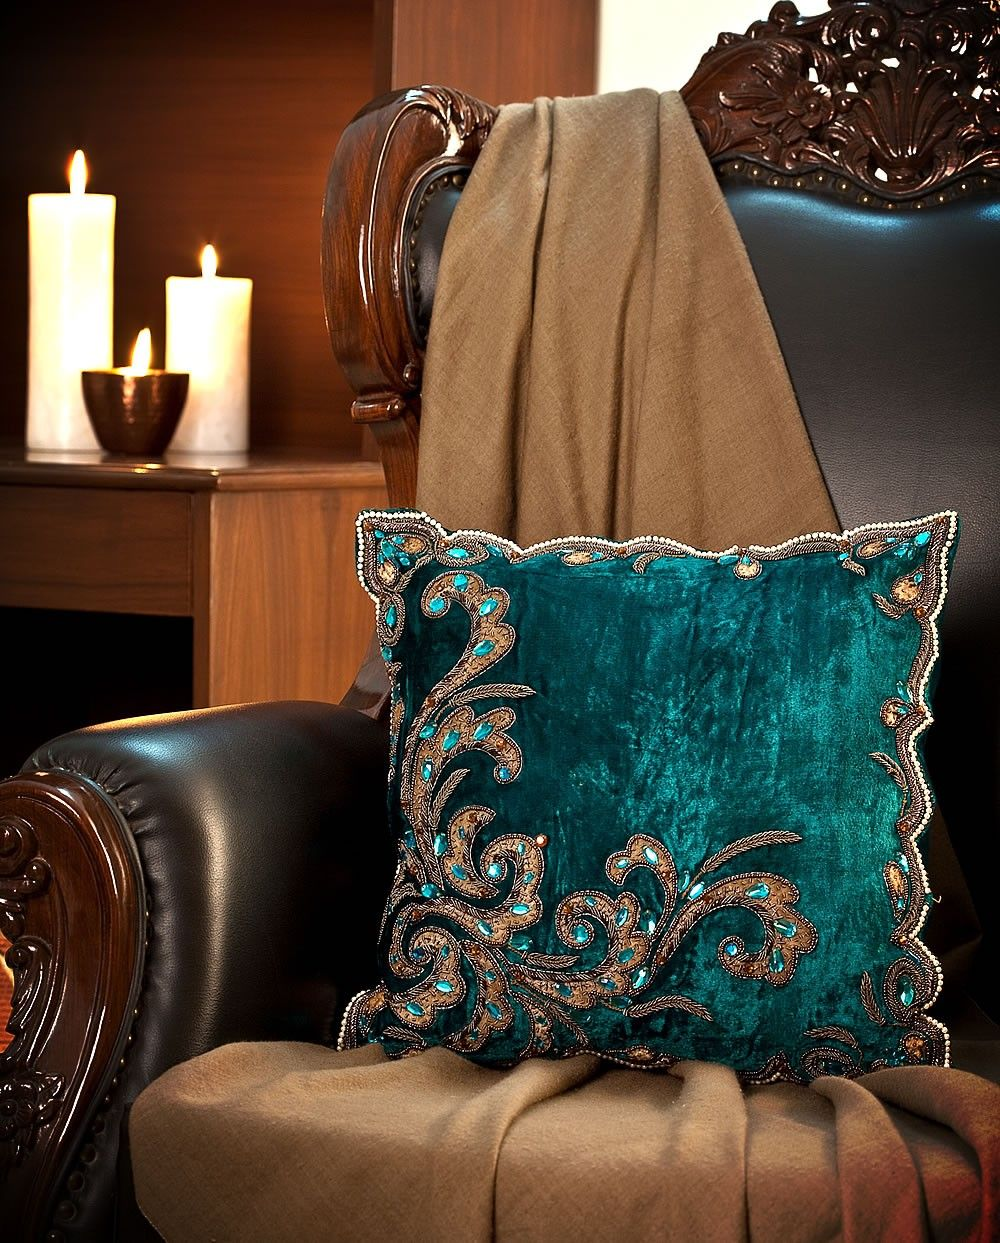 Turquoise Aqua Blue Velvet Decorative Cushion With